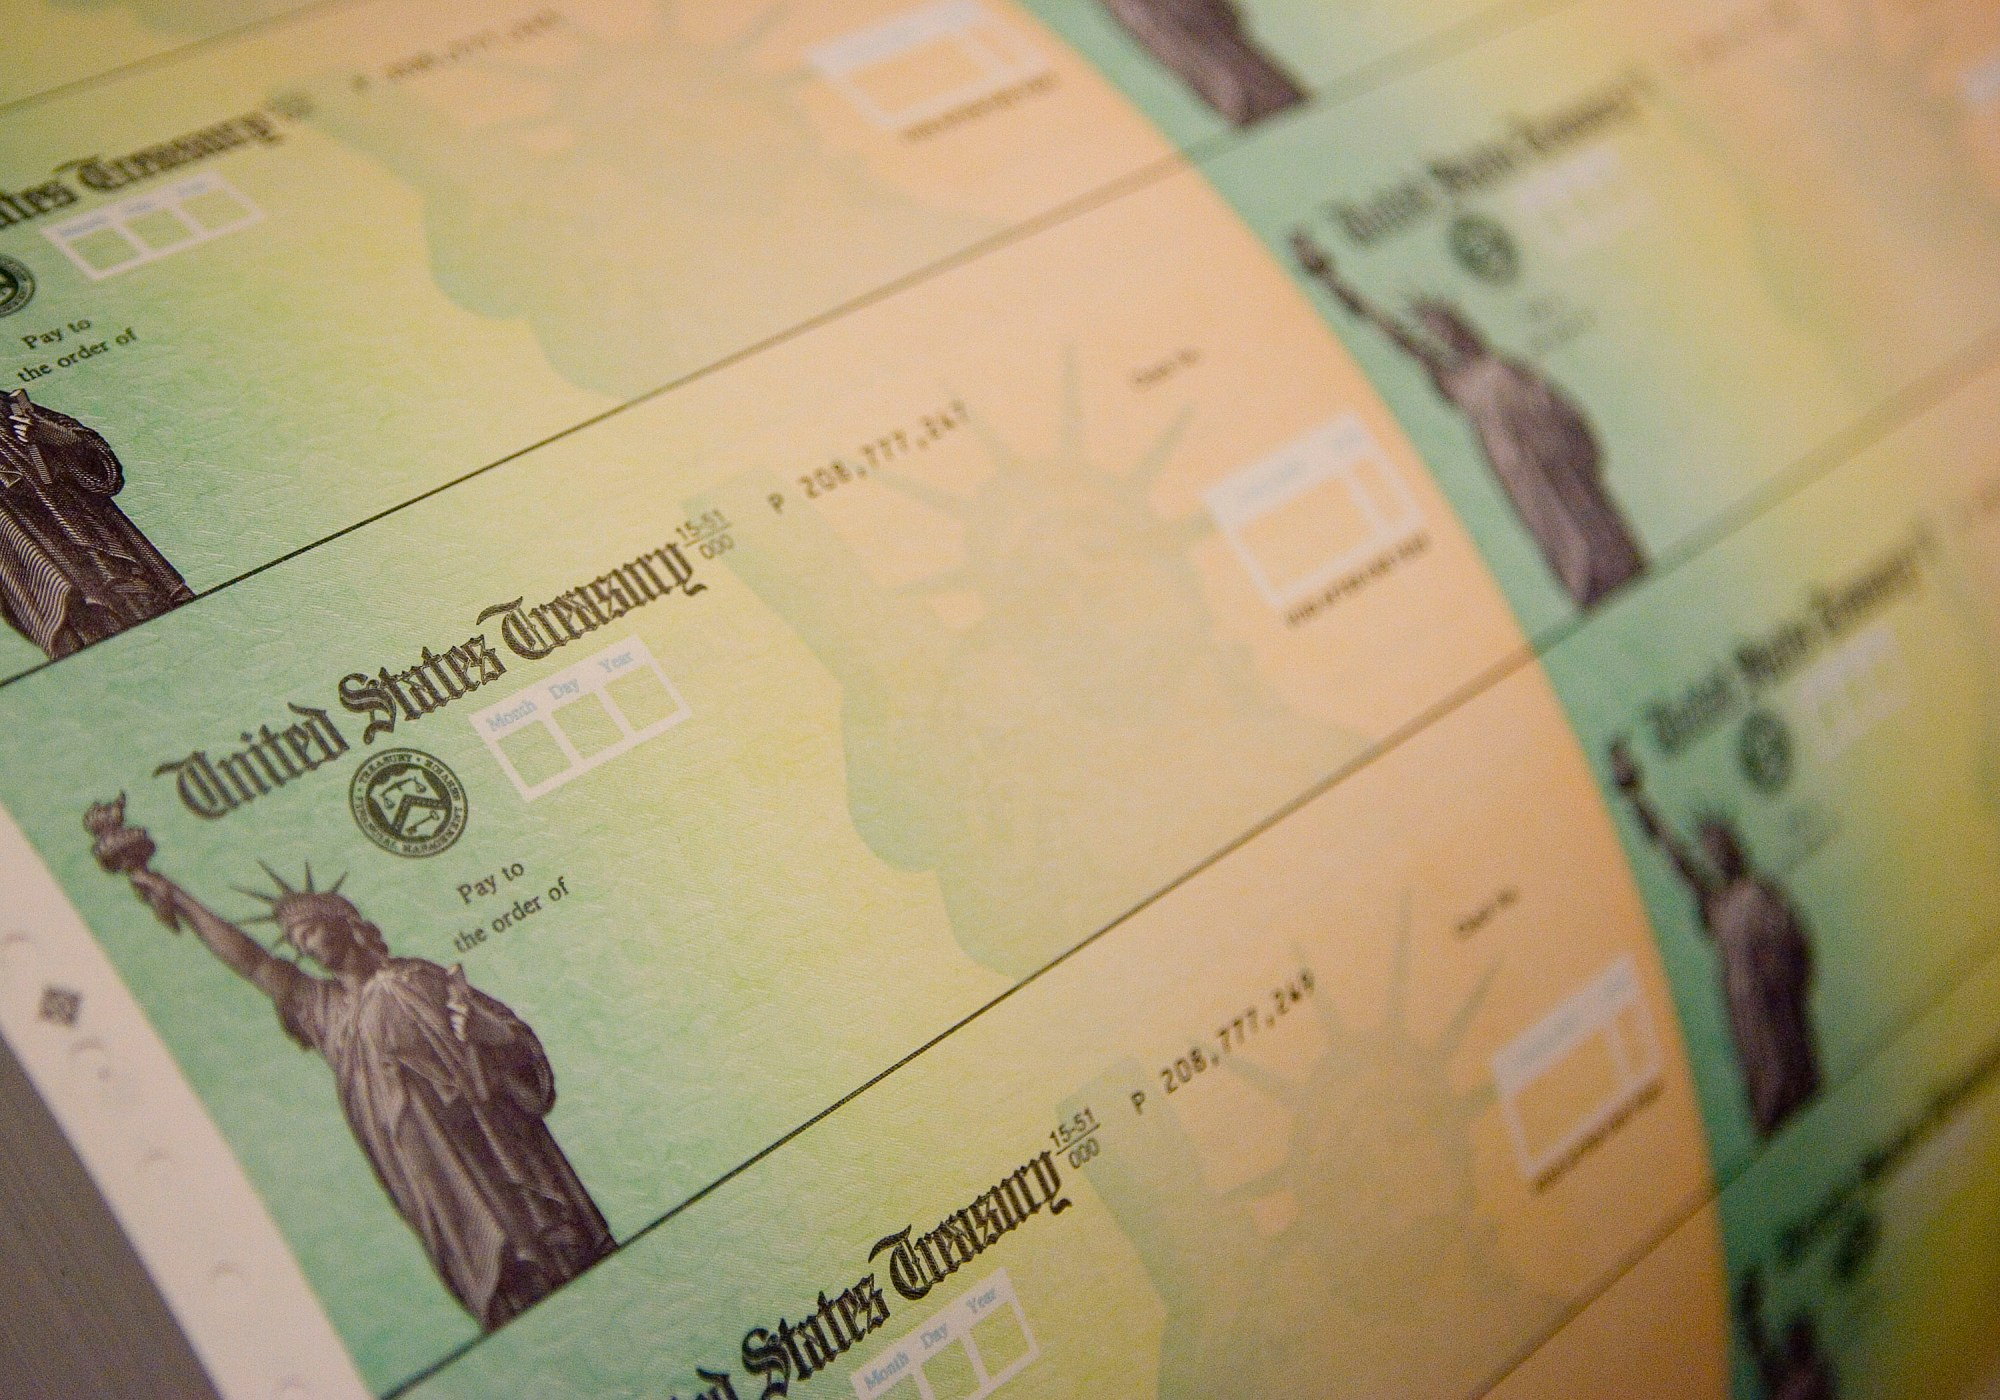 Economic stimulus checks are prepared for printing at the Philadelphia Financial Center May 8, 2008 in Philadelphia, Pennsylvania. One hundred and thirty million households are eligible to receive a tax rebate check under the $168 billion economic stimulus plan. (Jeff Fusco/Getty Images)